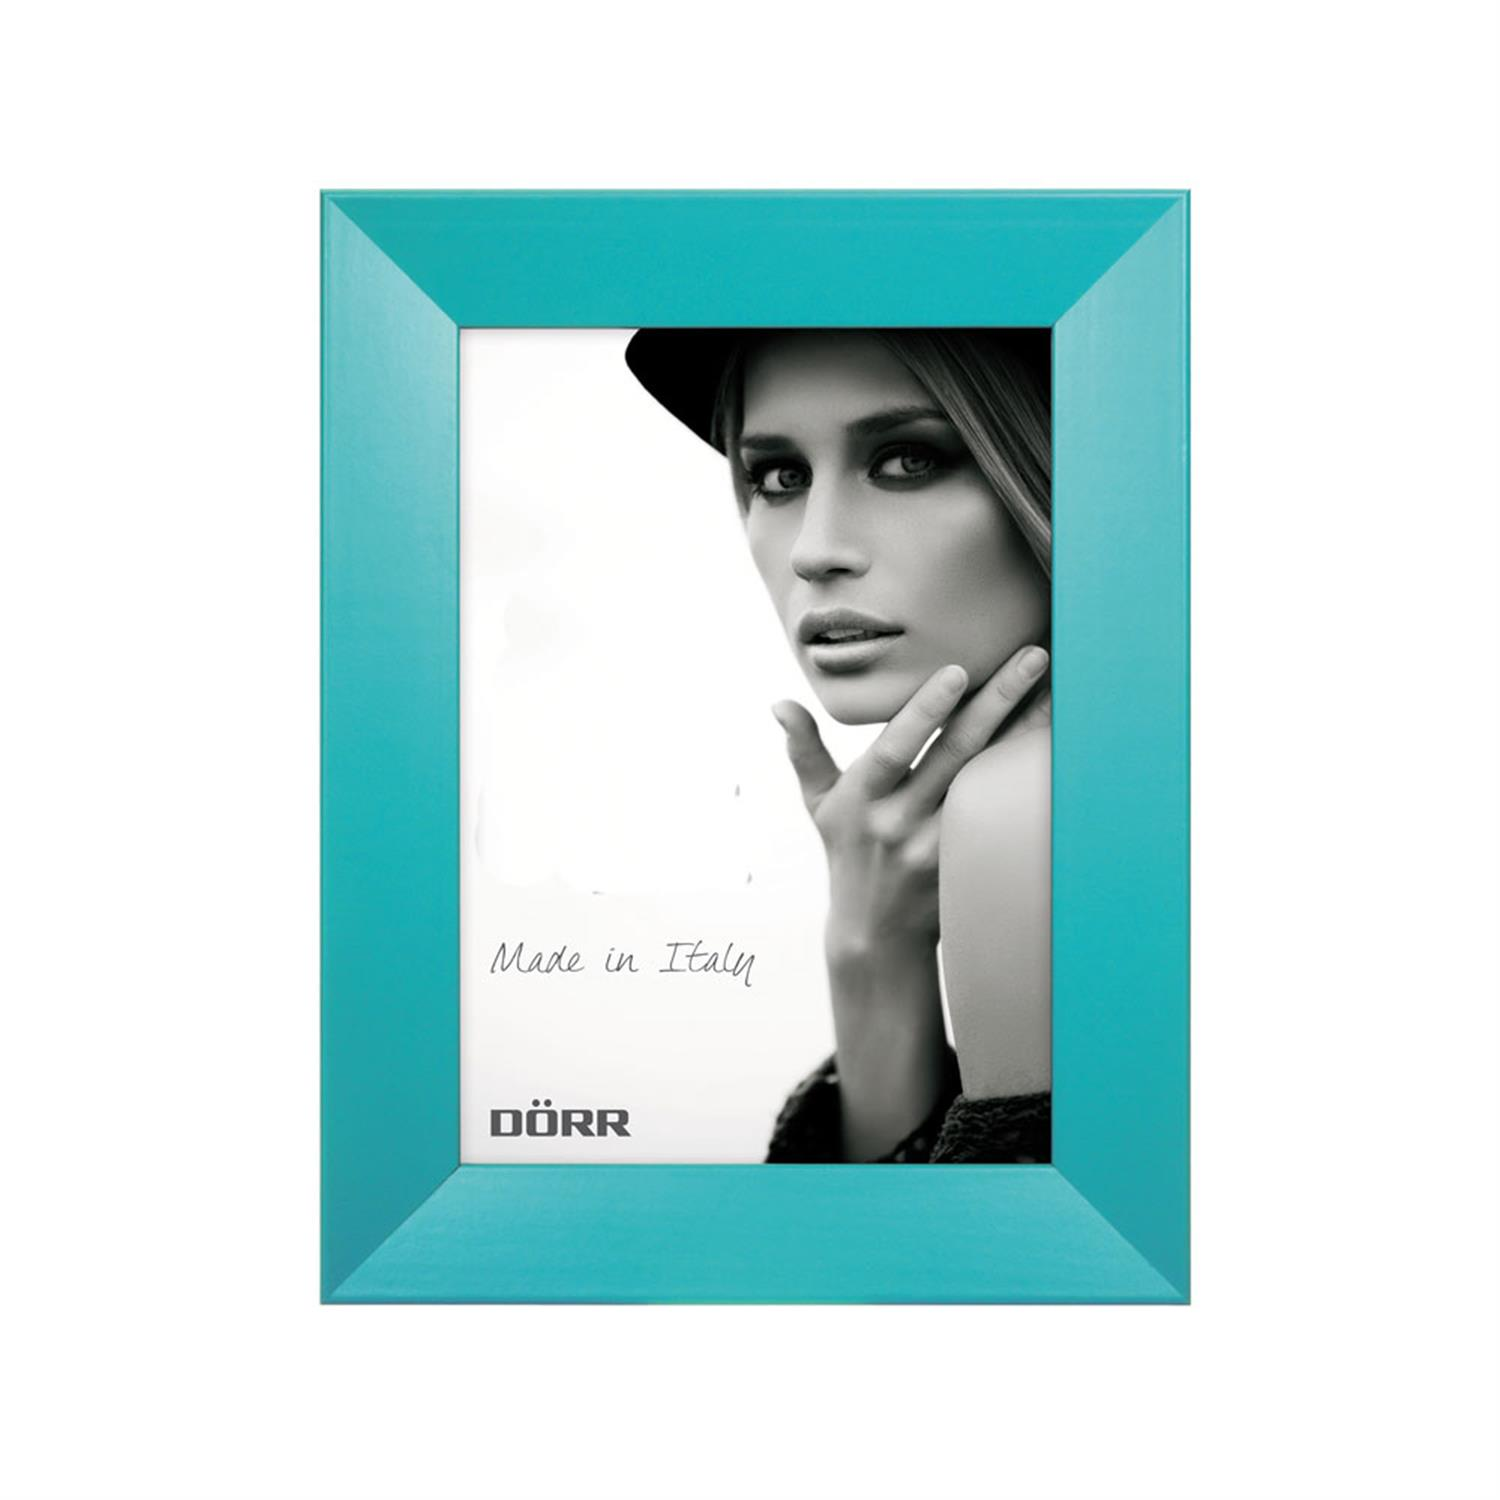 Dorr Trend Turquoise 7x5 inches Wood Photo Frame